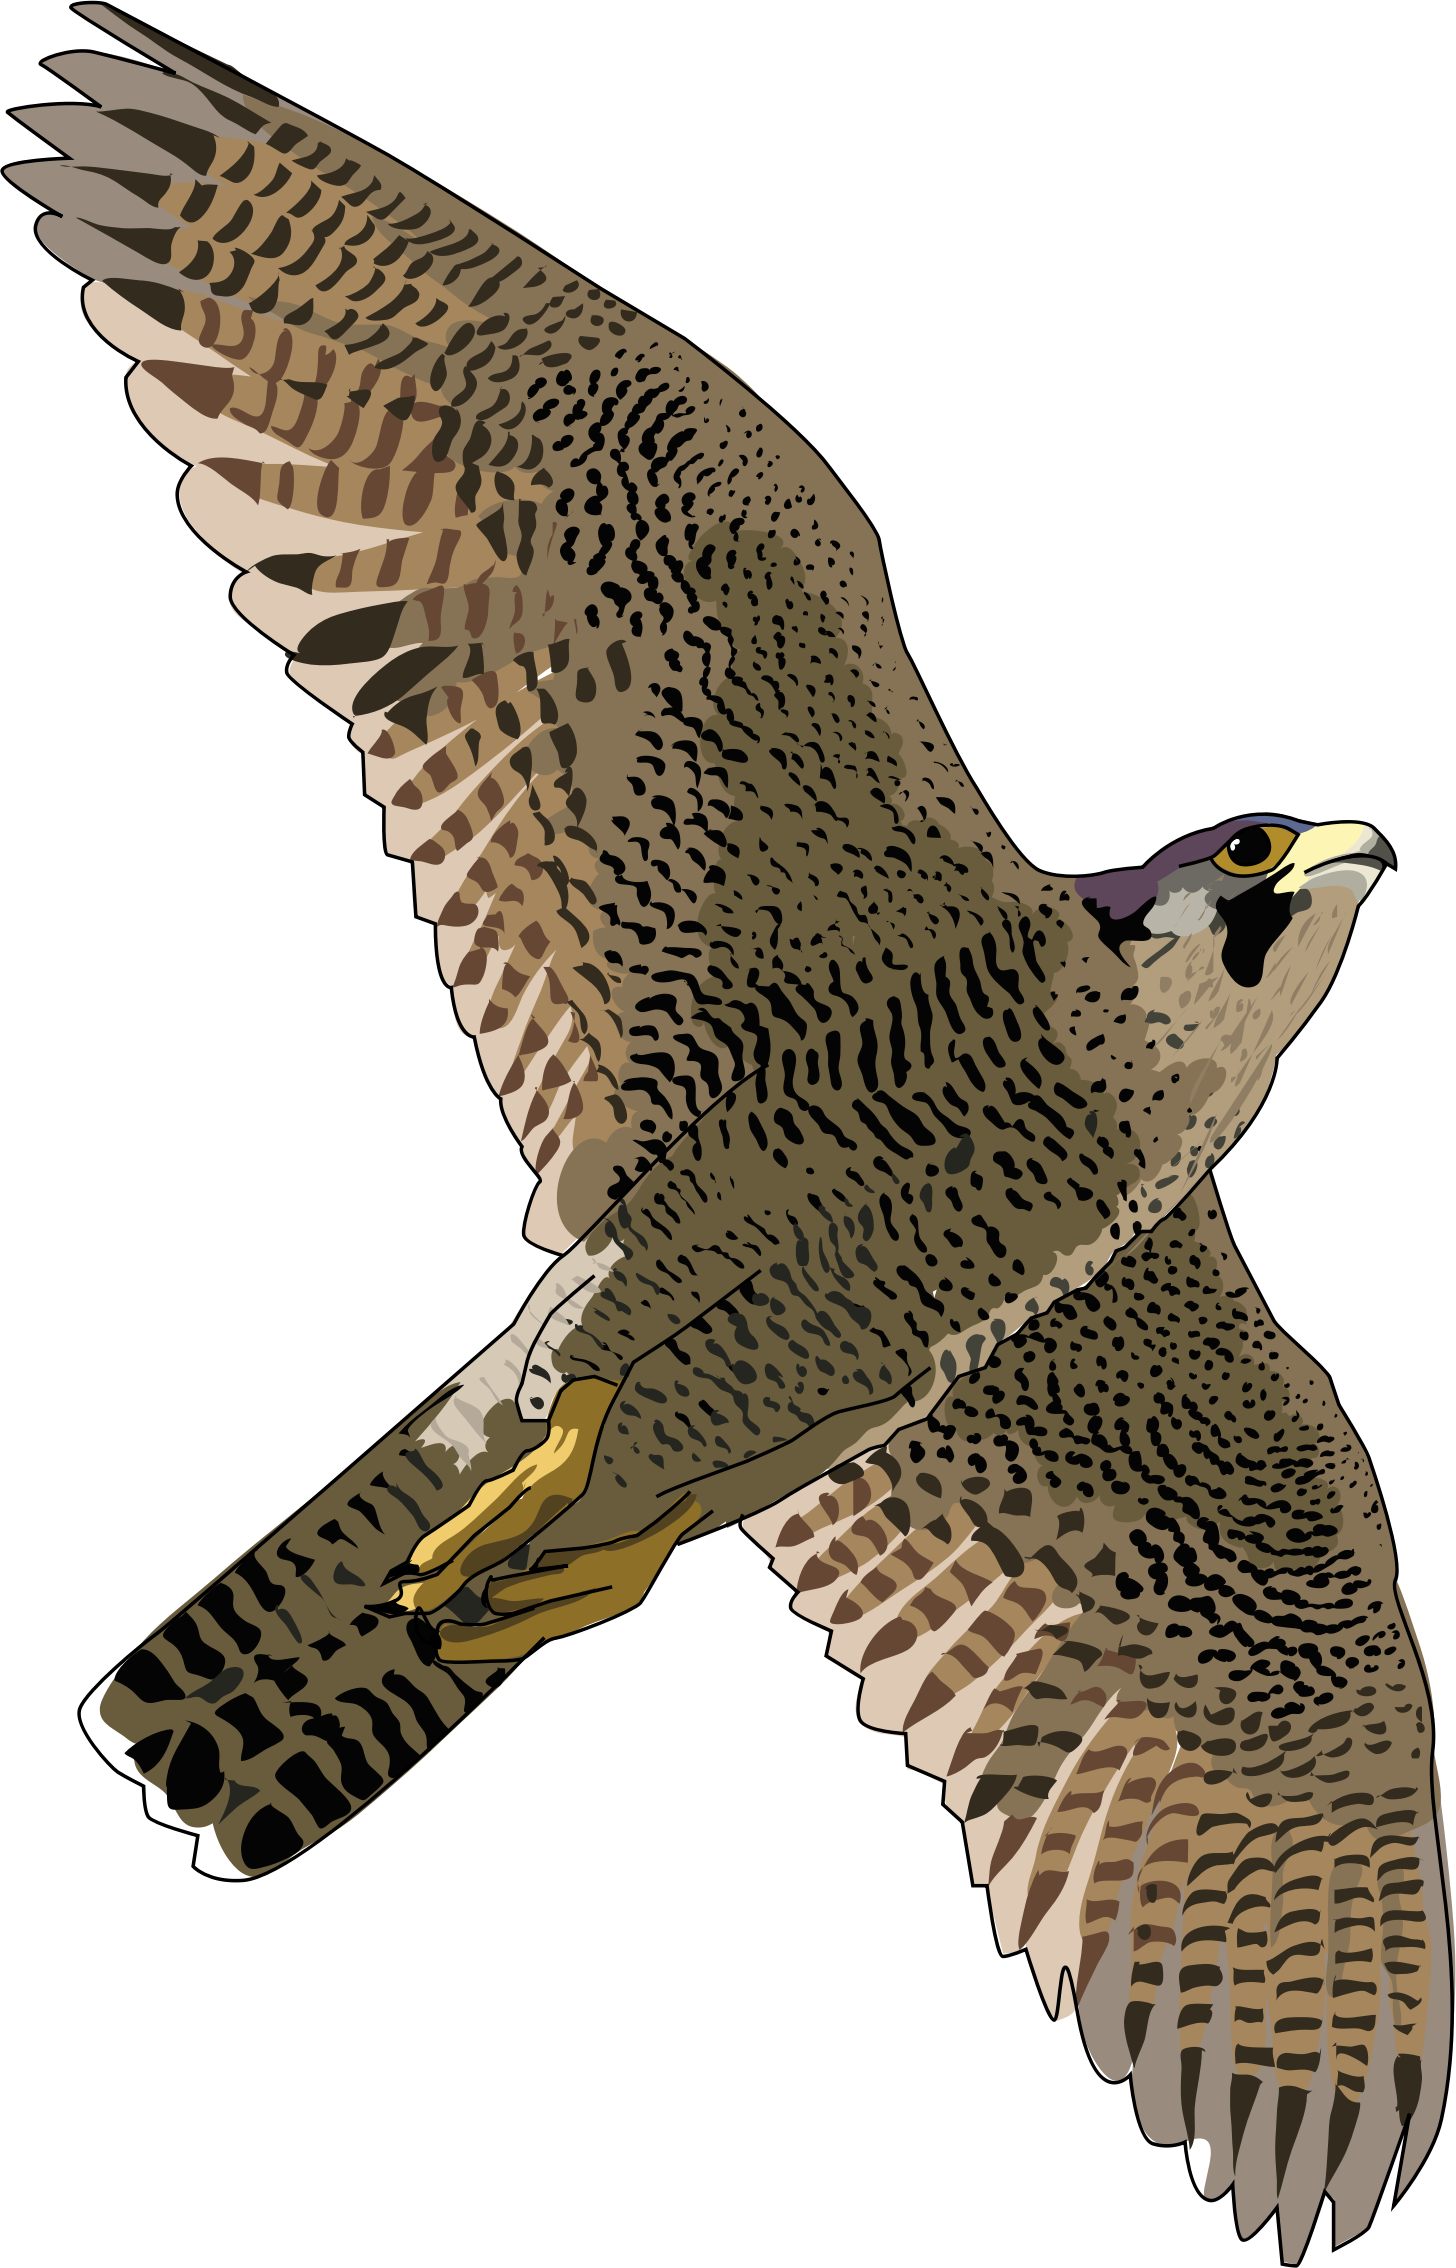 Download PNG image - Falcon Free Download Png - Falcon HD PNG